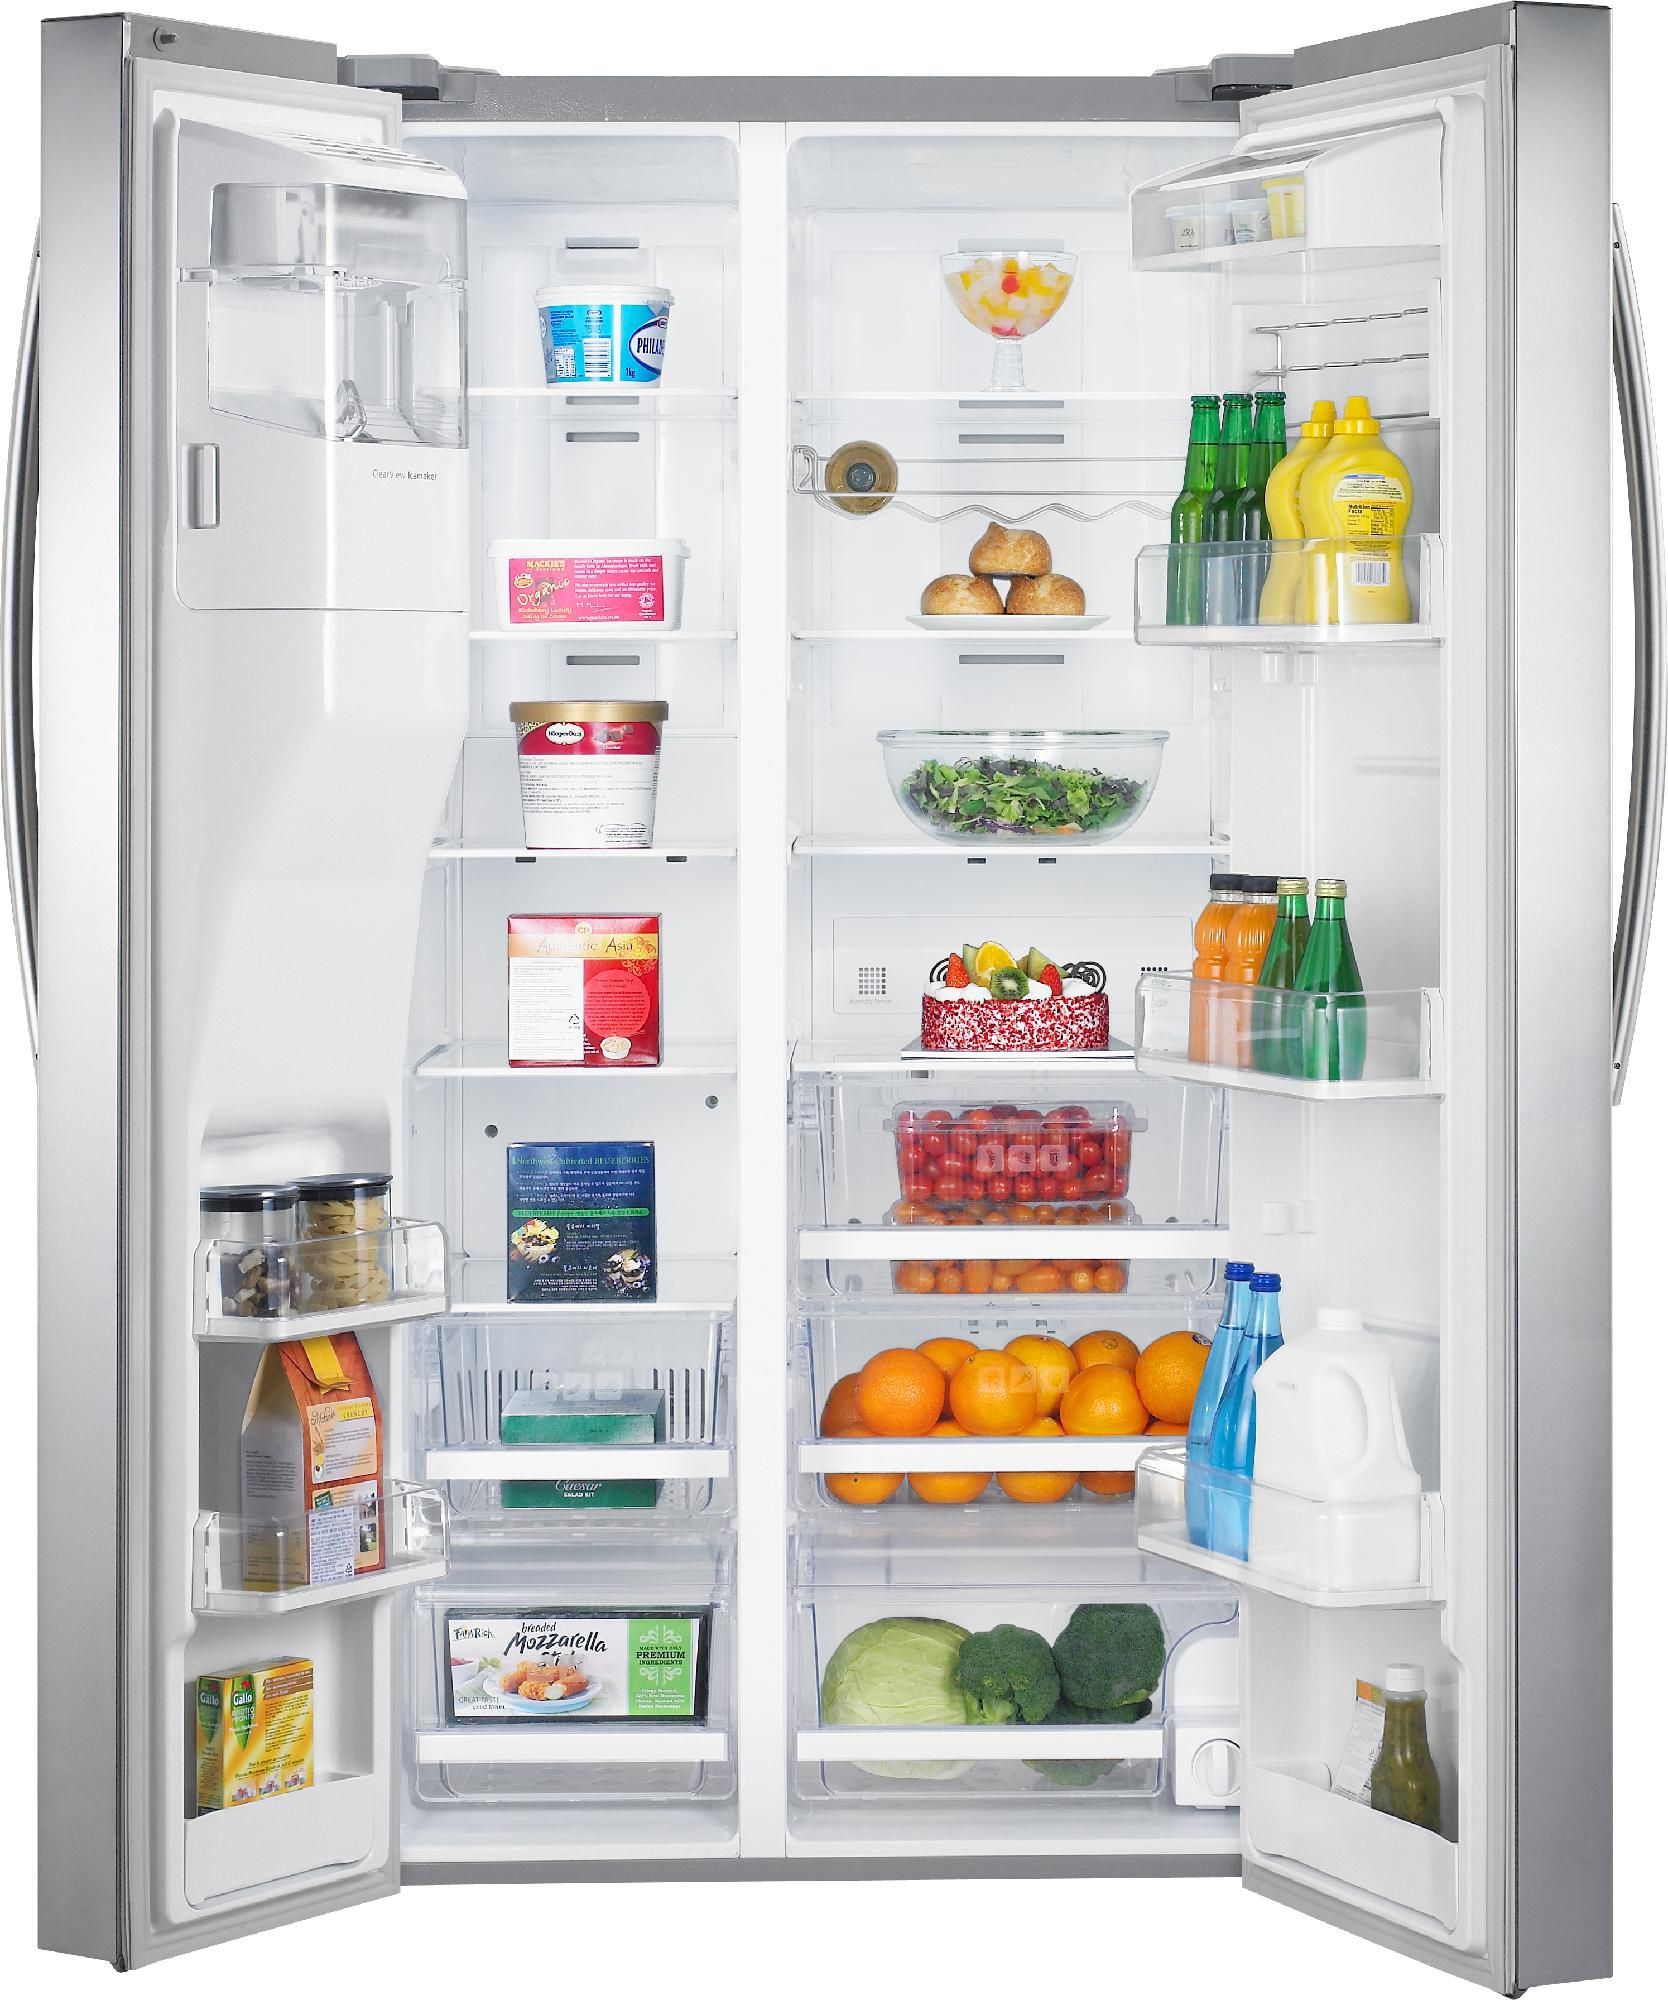 Samsung 29.6 cu. ft. Side-By-Side Refrigerator -Stainless Steel